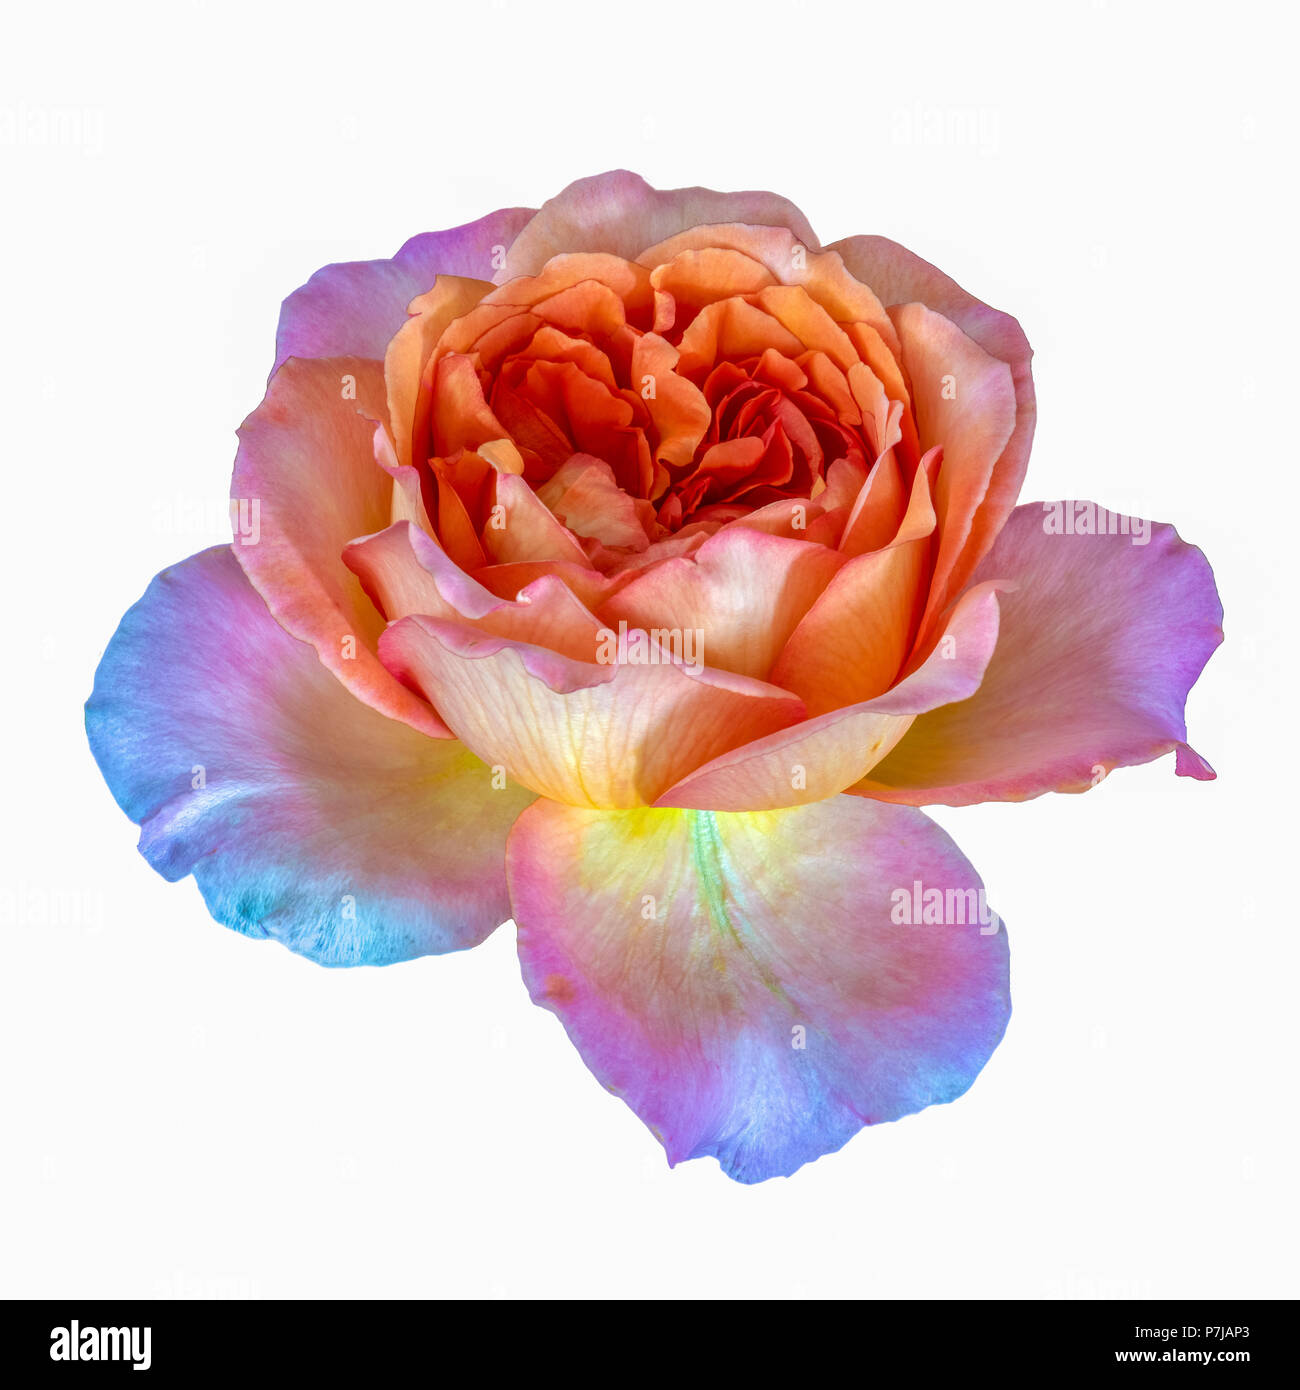 Pastel Watercolor Fine Art Still Life Floral Macro Flower Image Of A Single Isolated Orange Violet Flowering Blooming Rose Blossom White Background